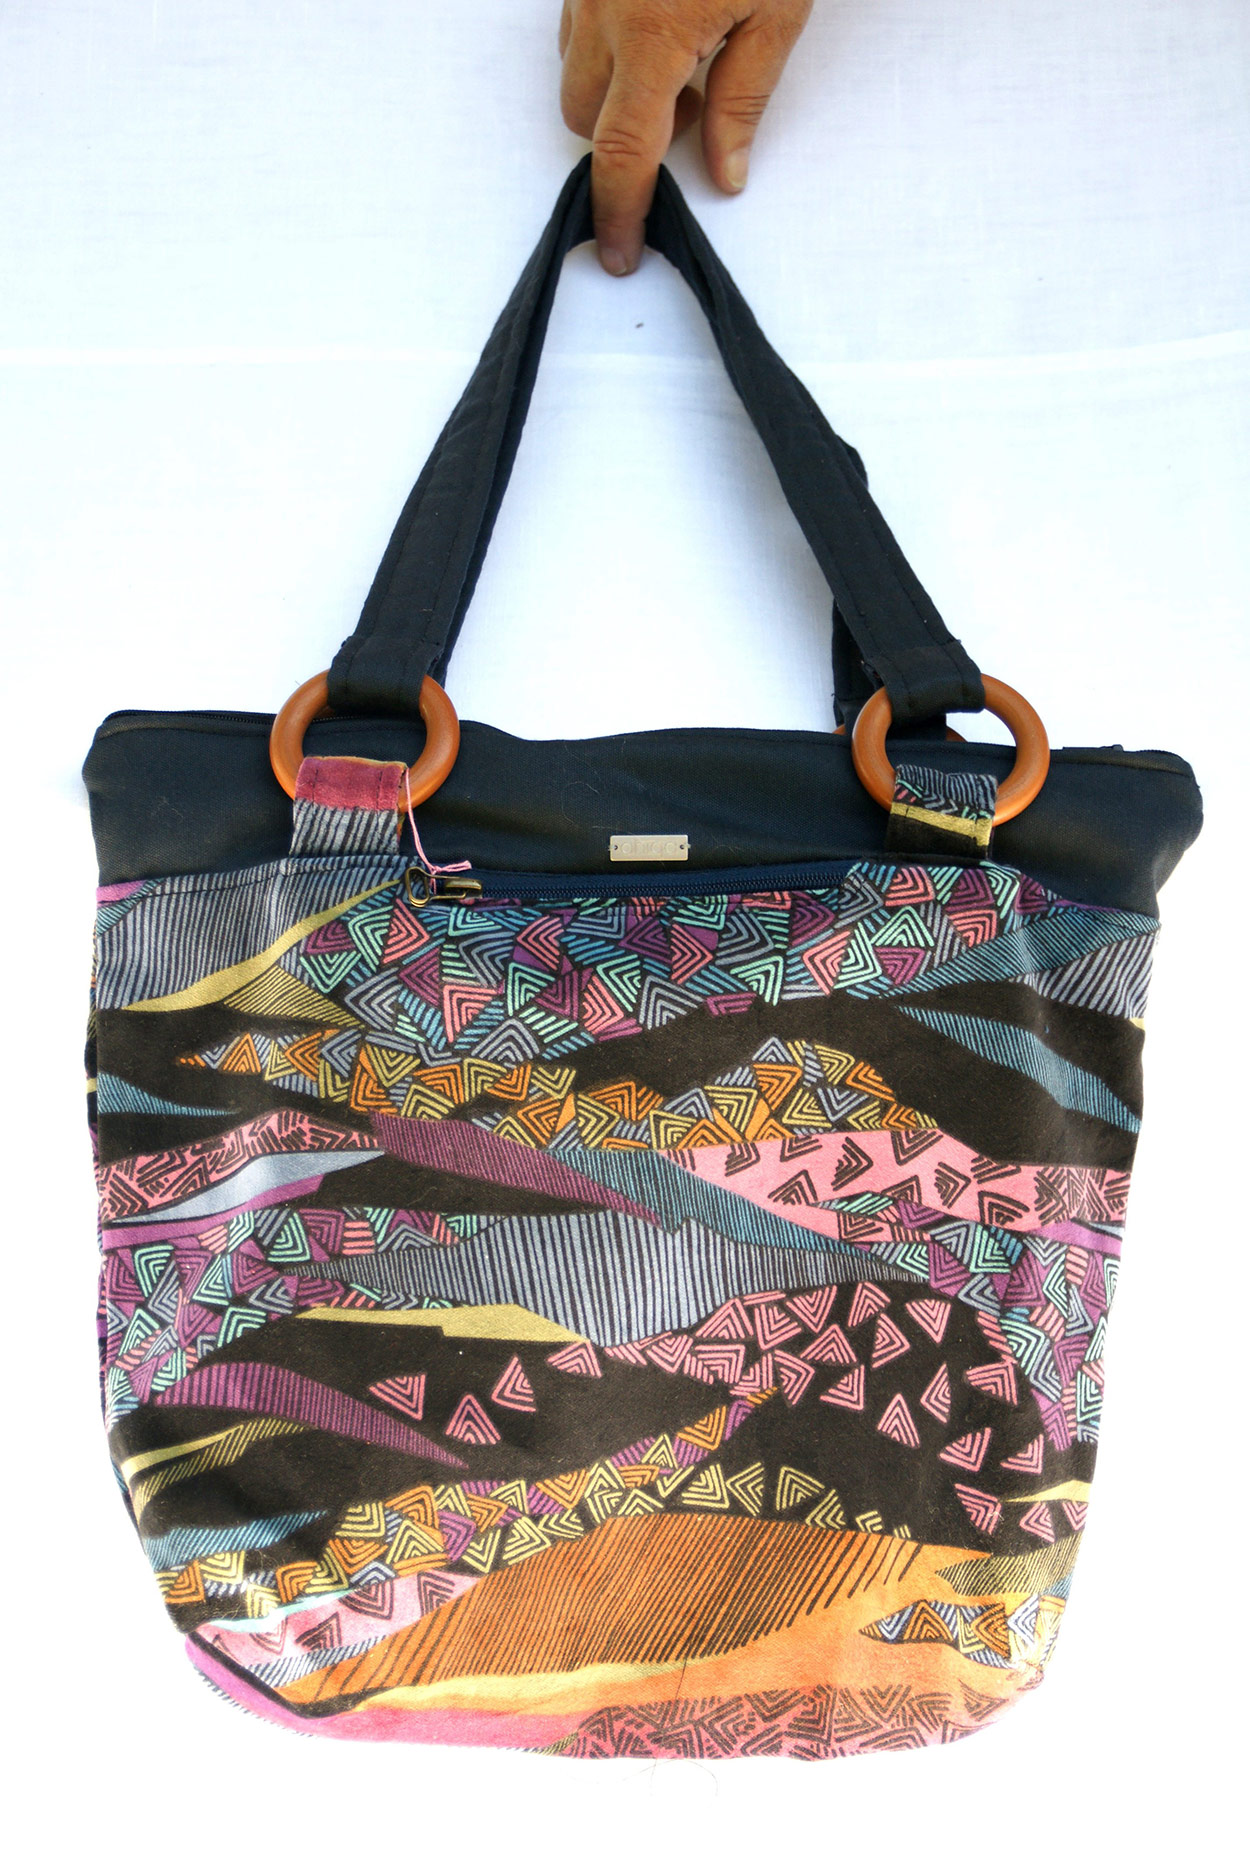 Citybags-(1)